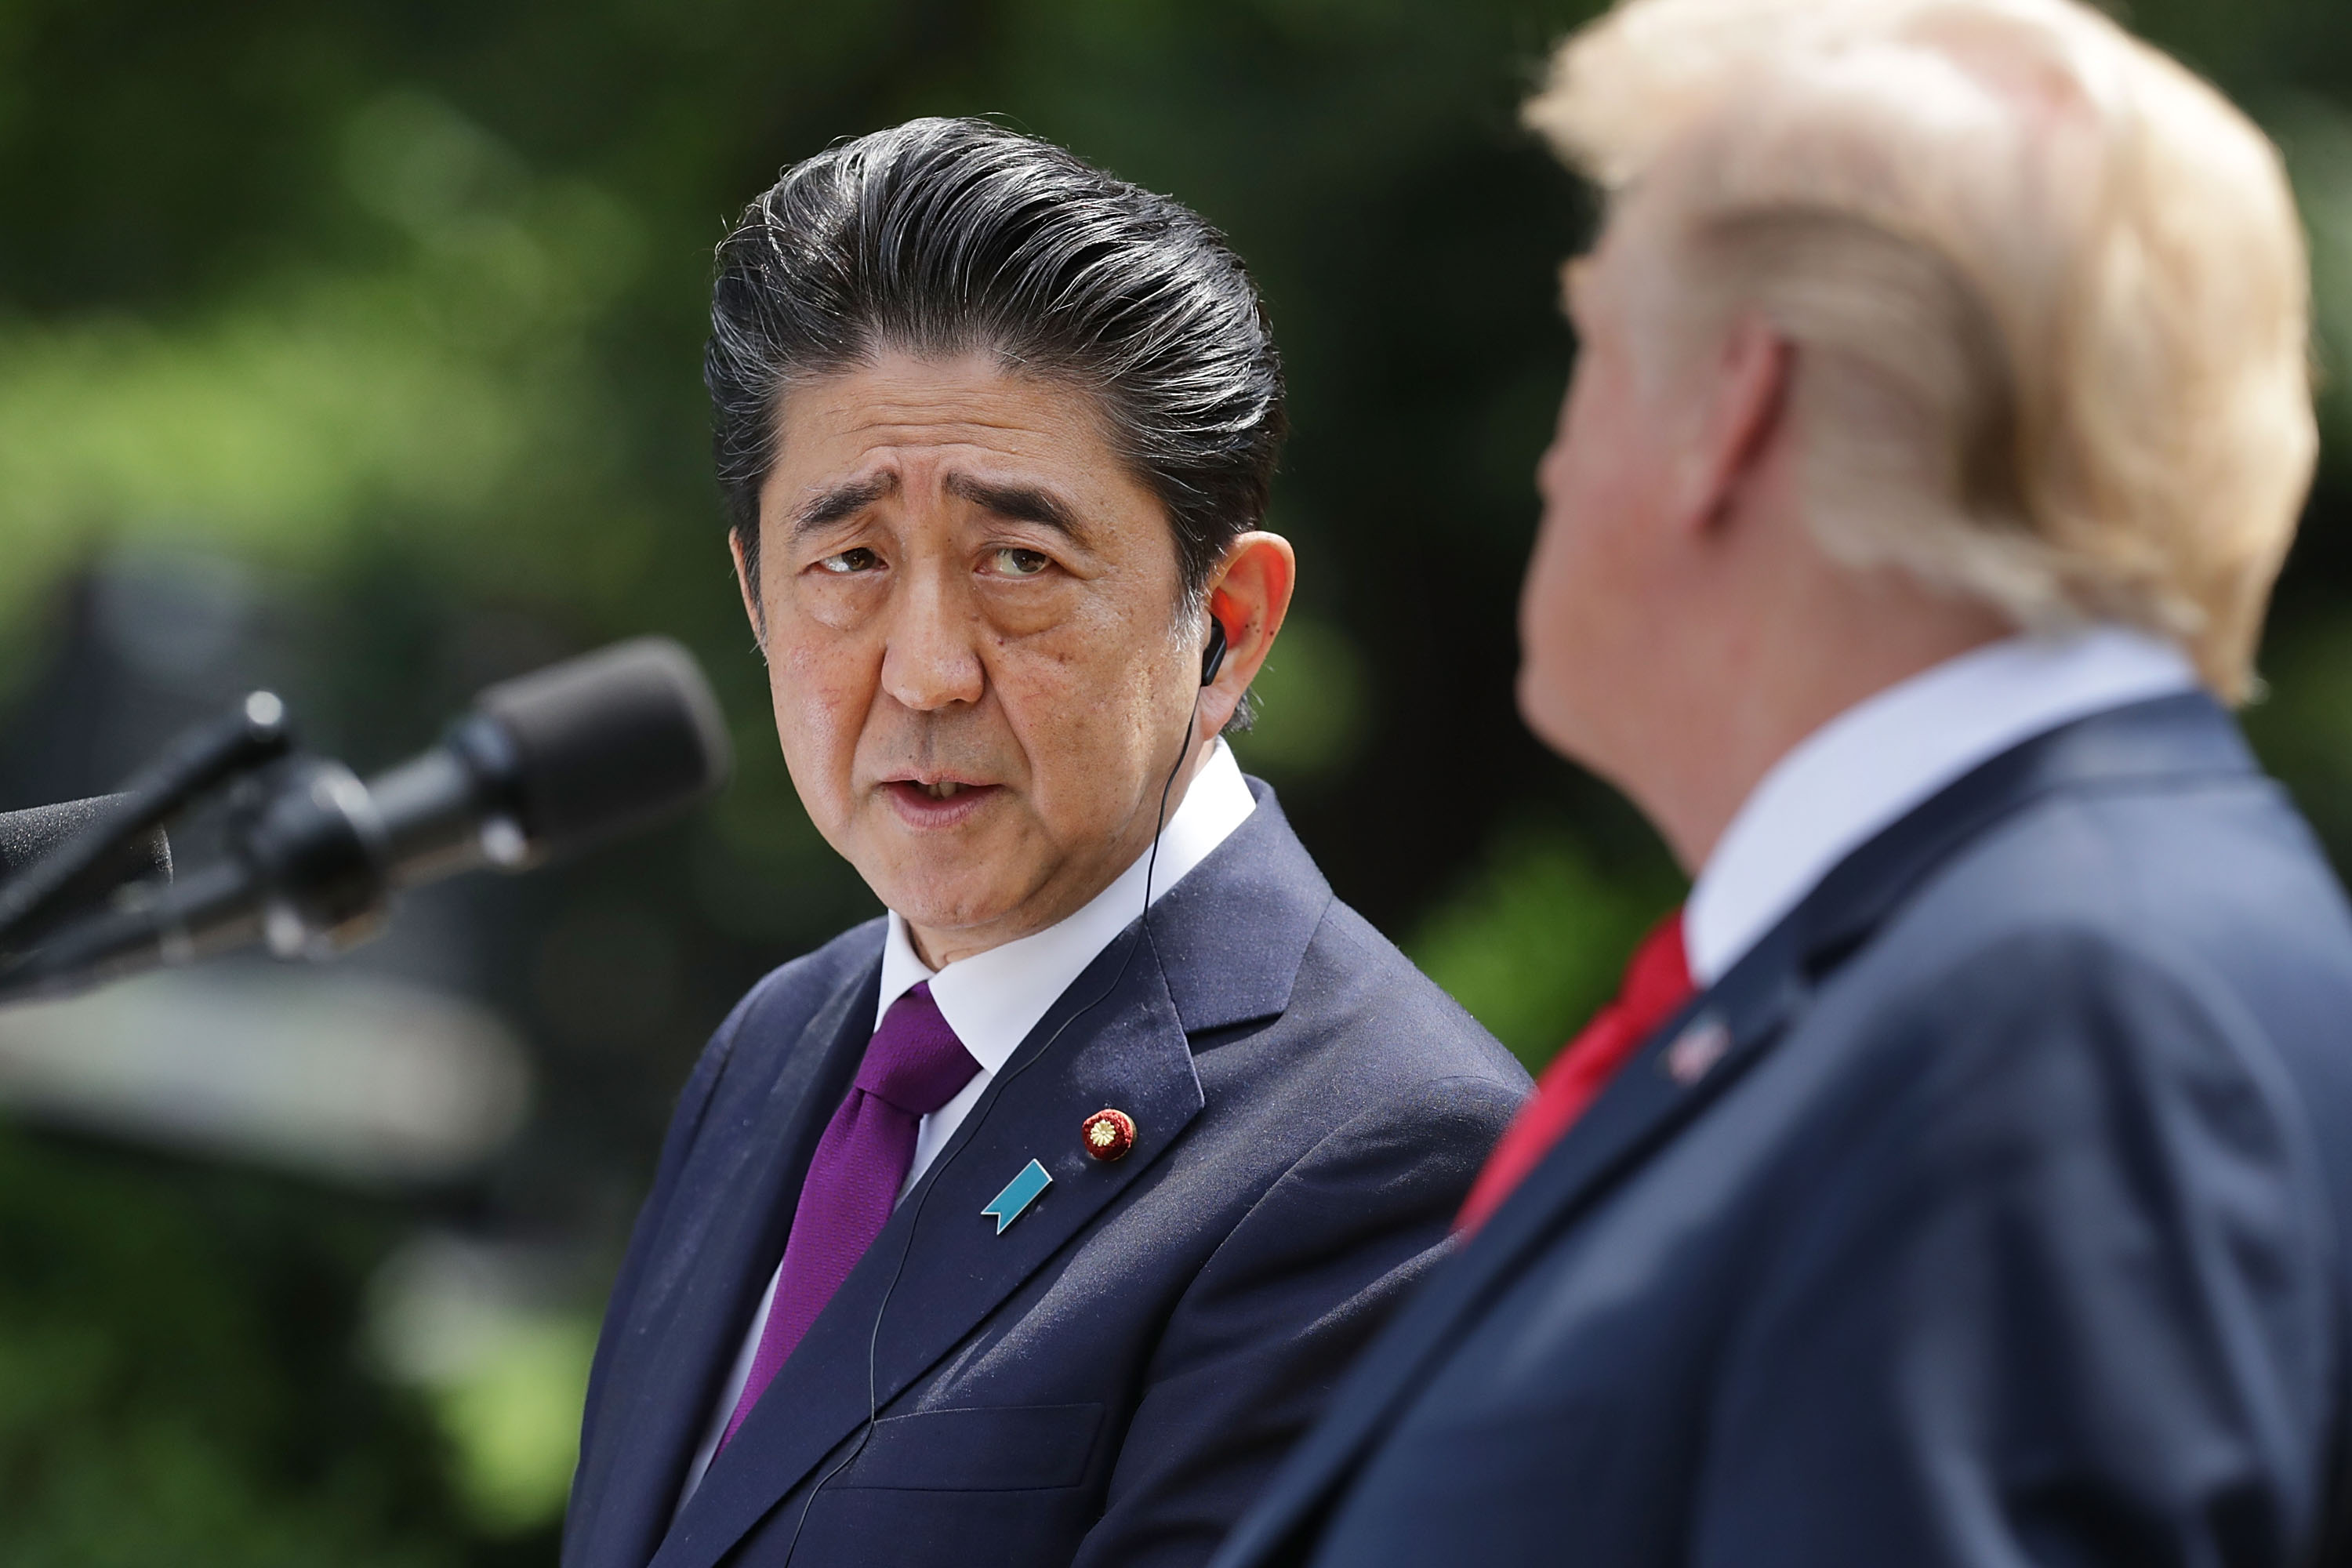 Japanese Prime Minister Shinzo Abe looks at President Donald Trump during a joint news conference at the White House on June 7, 2018 in Washington, DC.